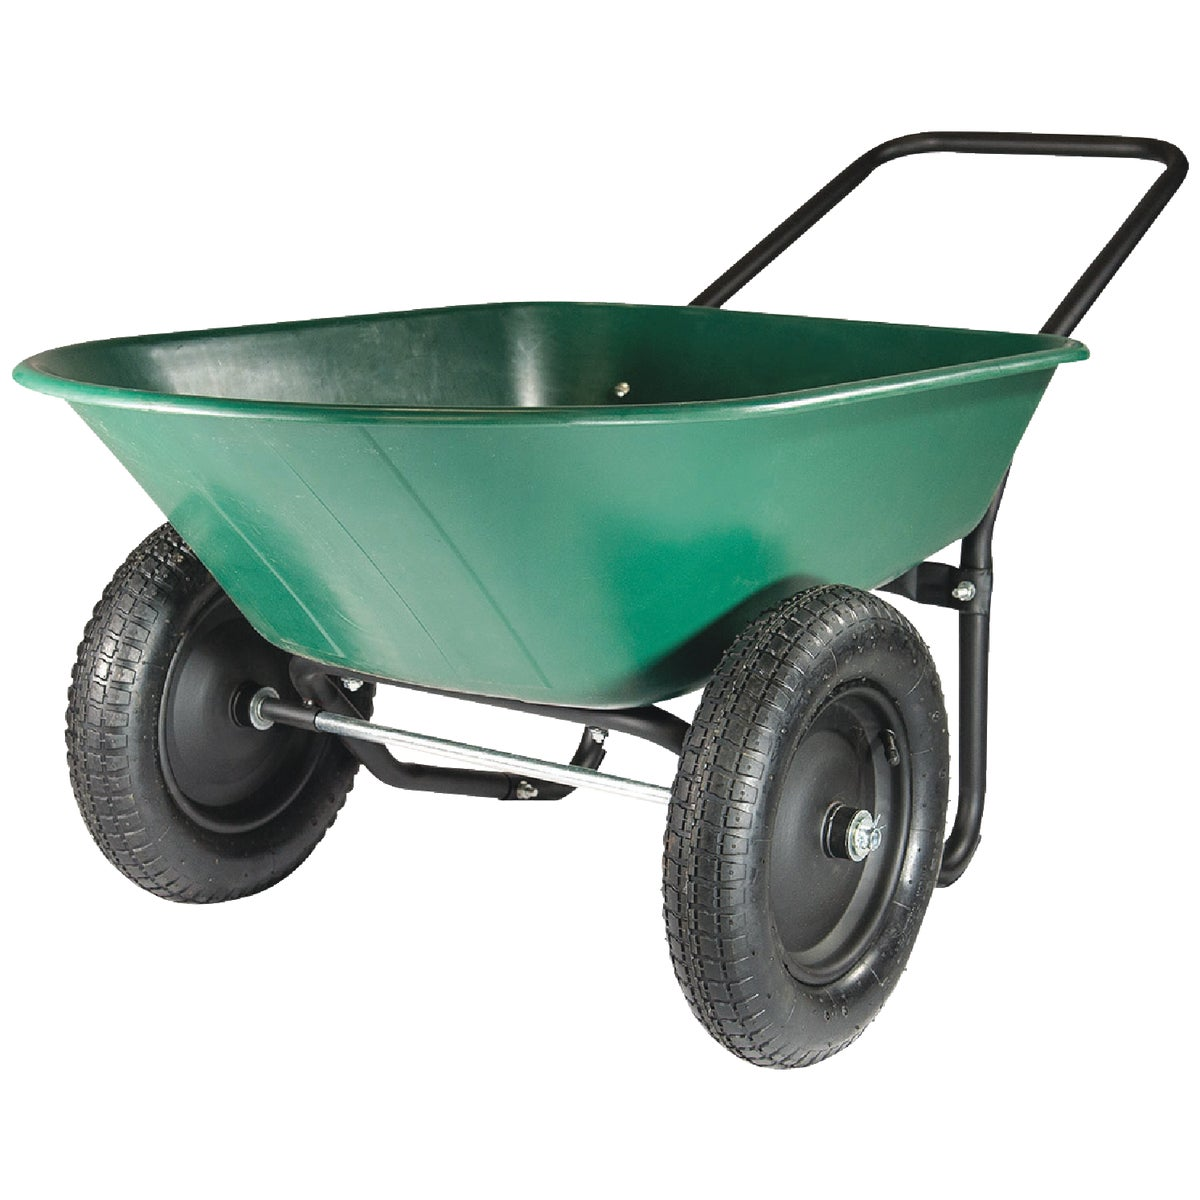 5CU FT POLY WHEELBARROW - 70015 by Marathon Industries